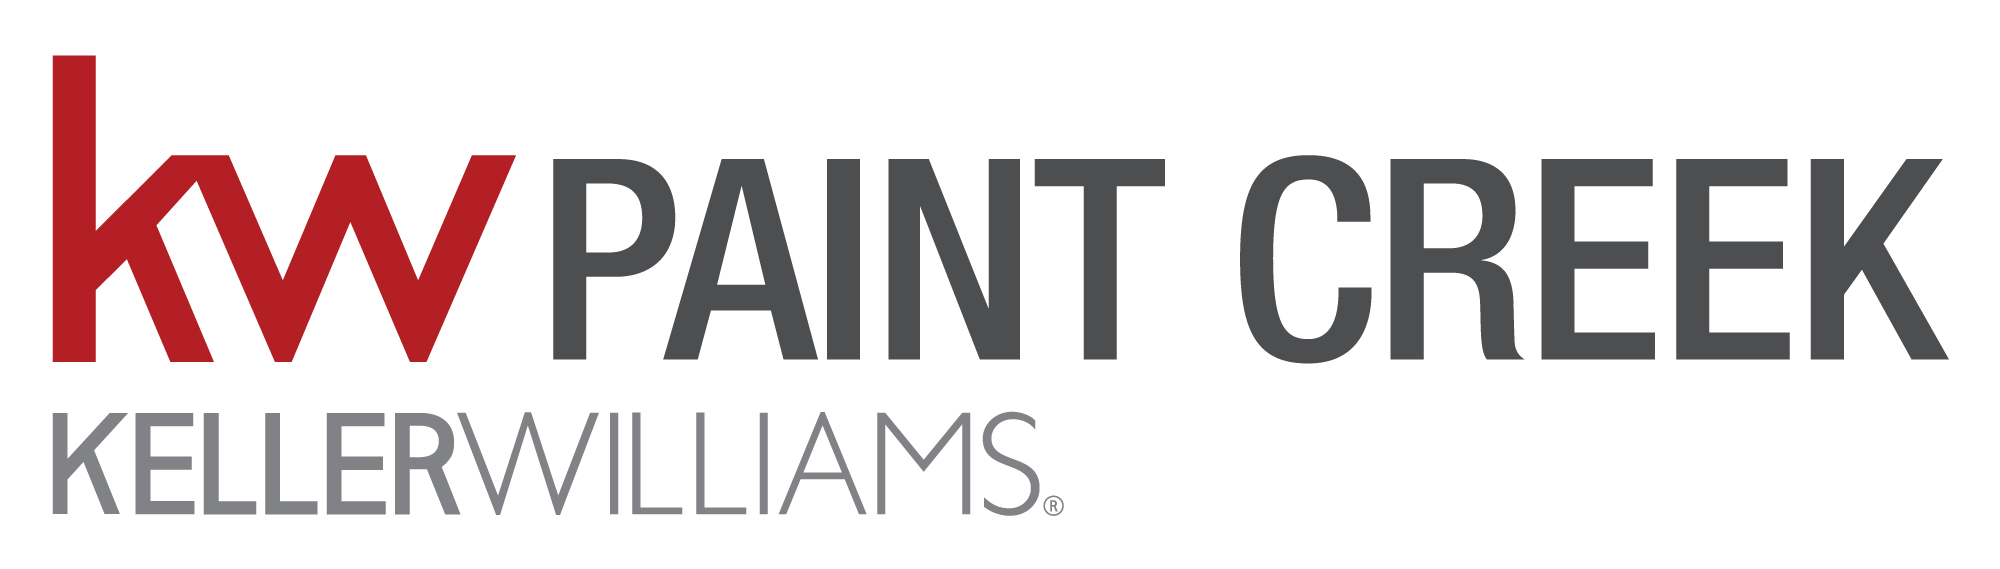 KellerWilliams_PaintCreek_Logo_WhiteBkgd_Large.jpg